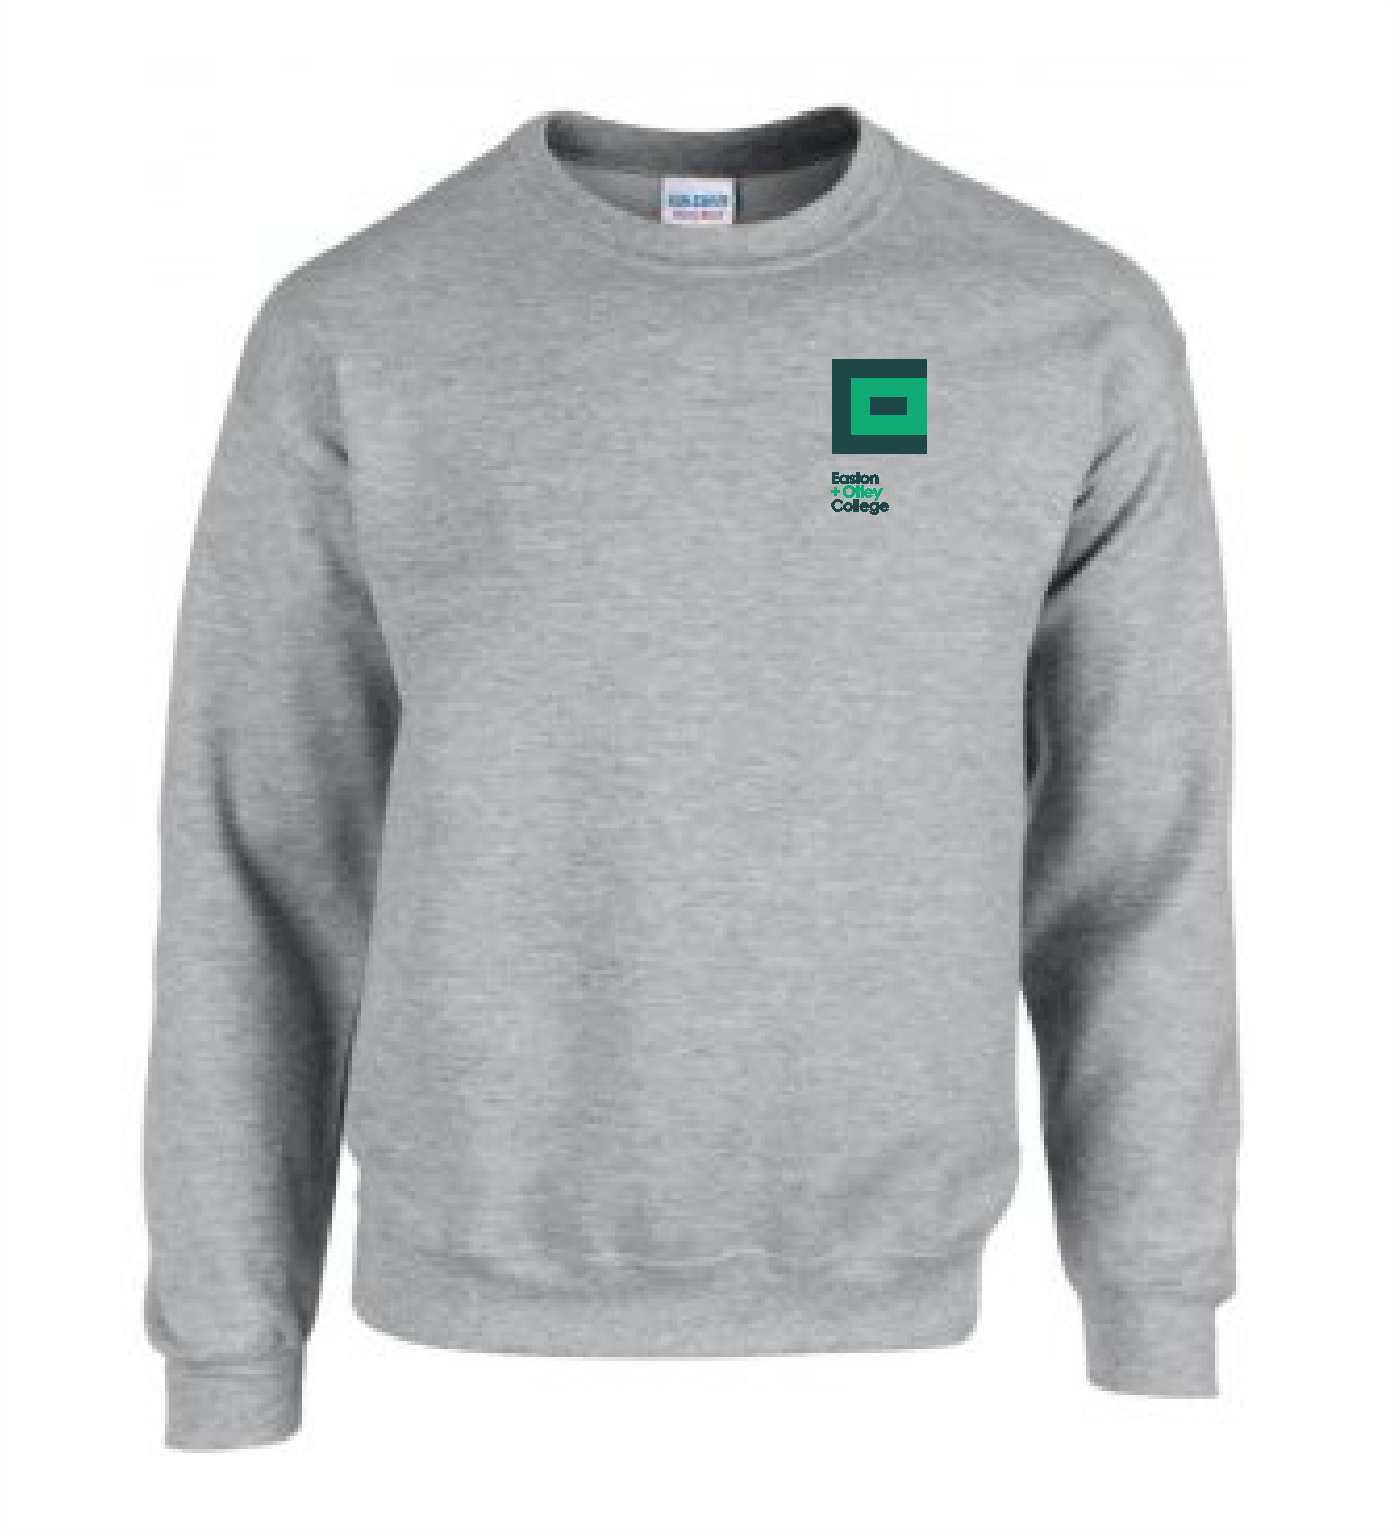 Easton Construction Sweatshirt